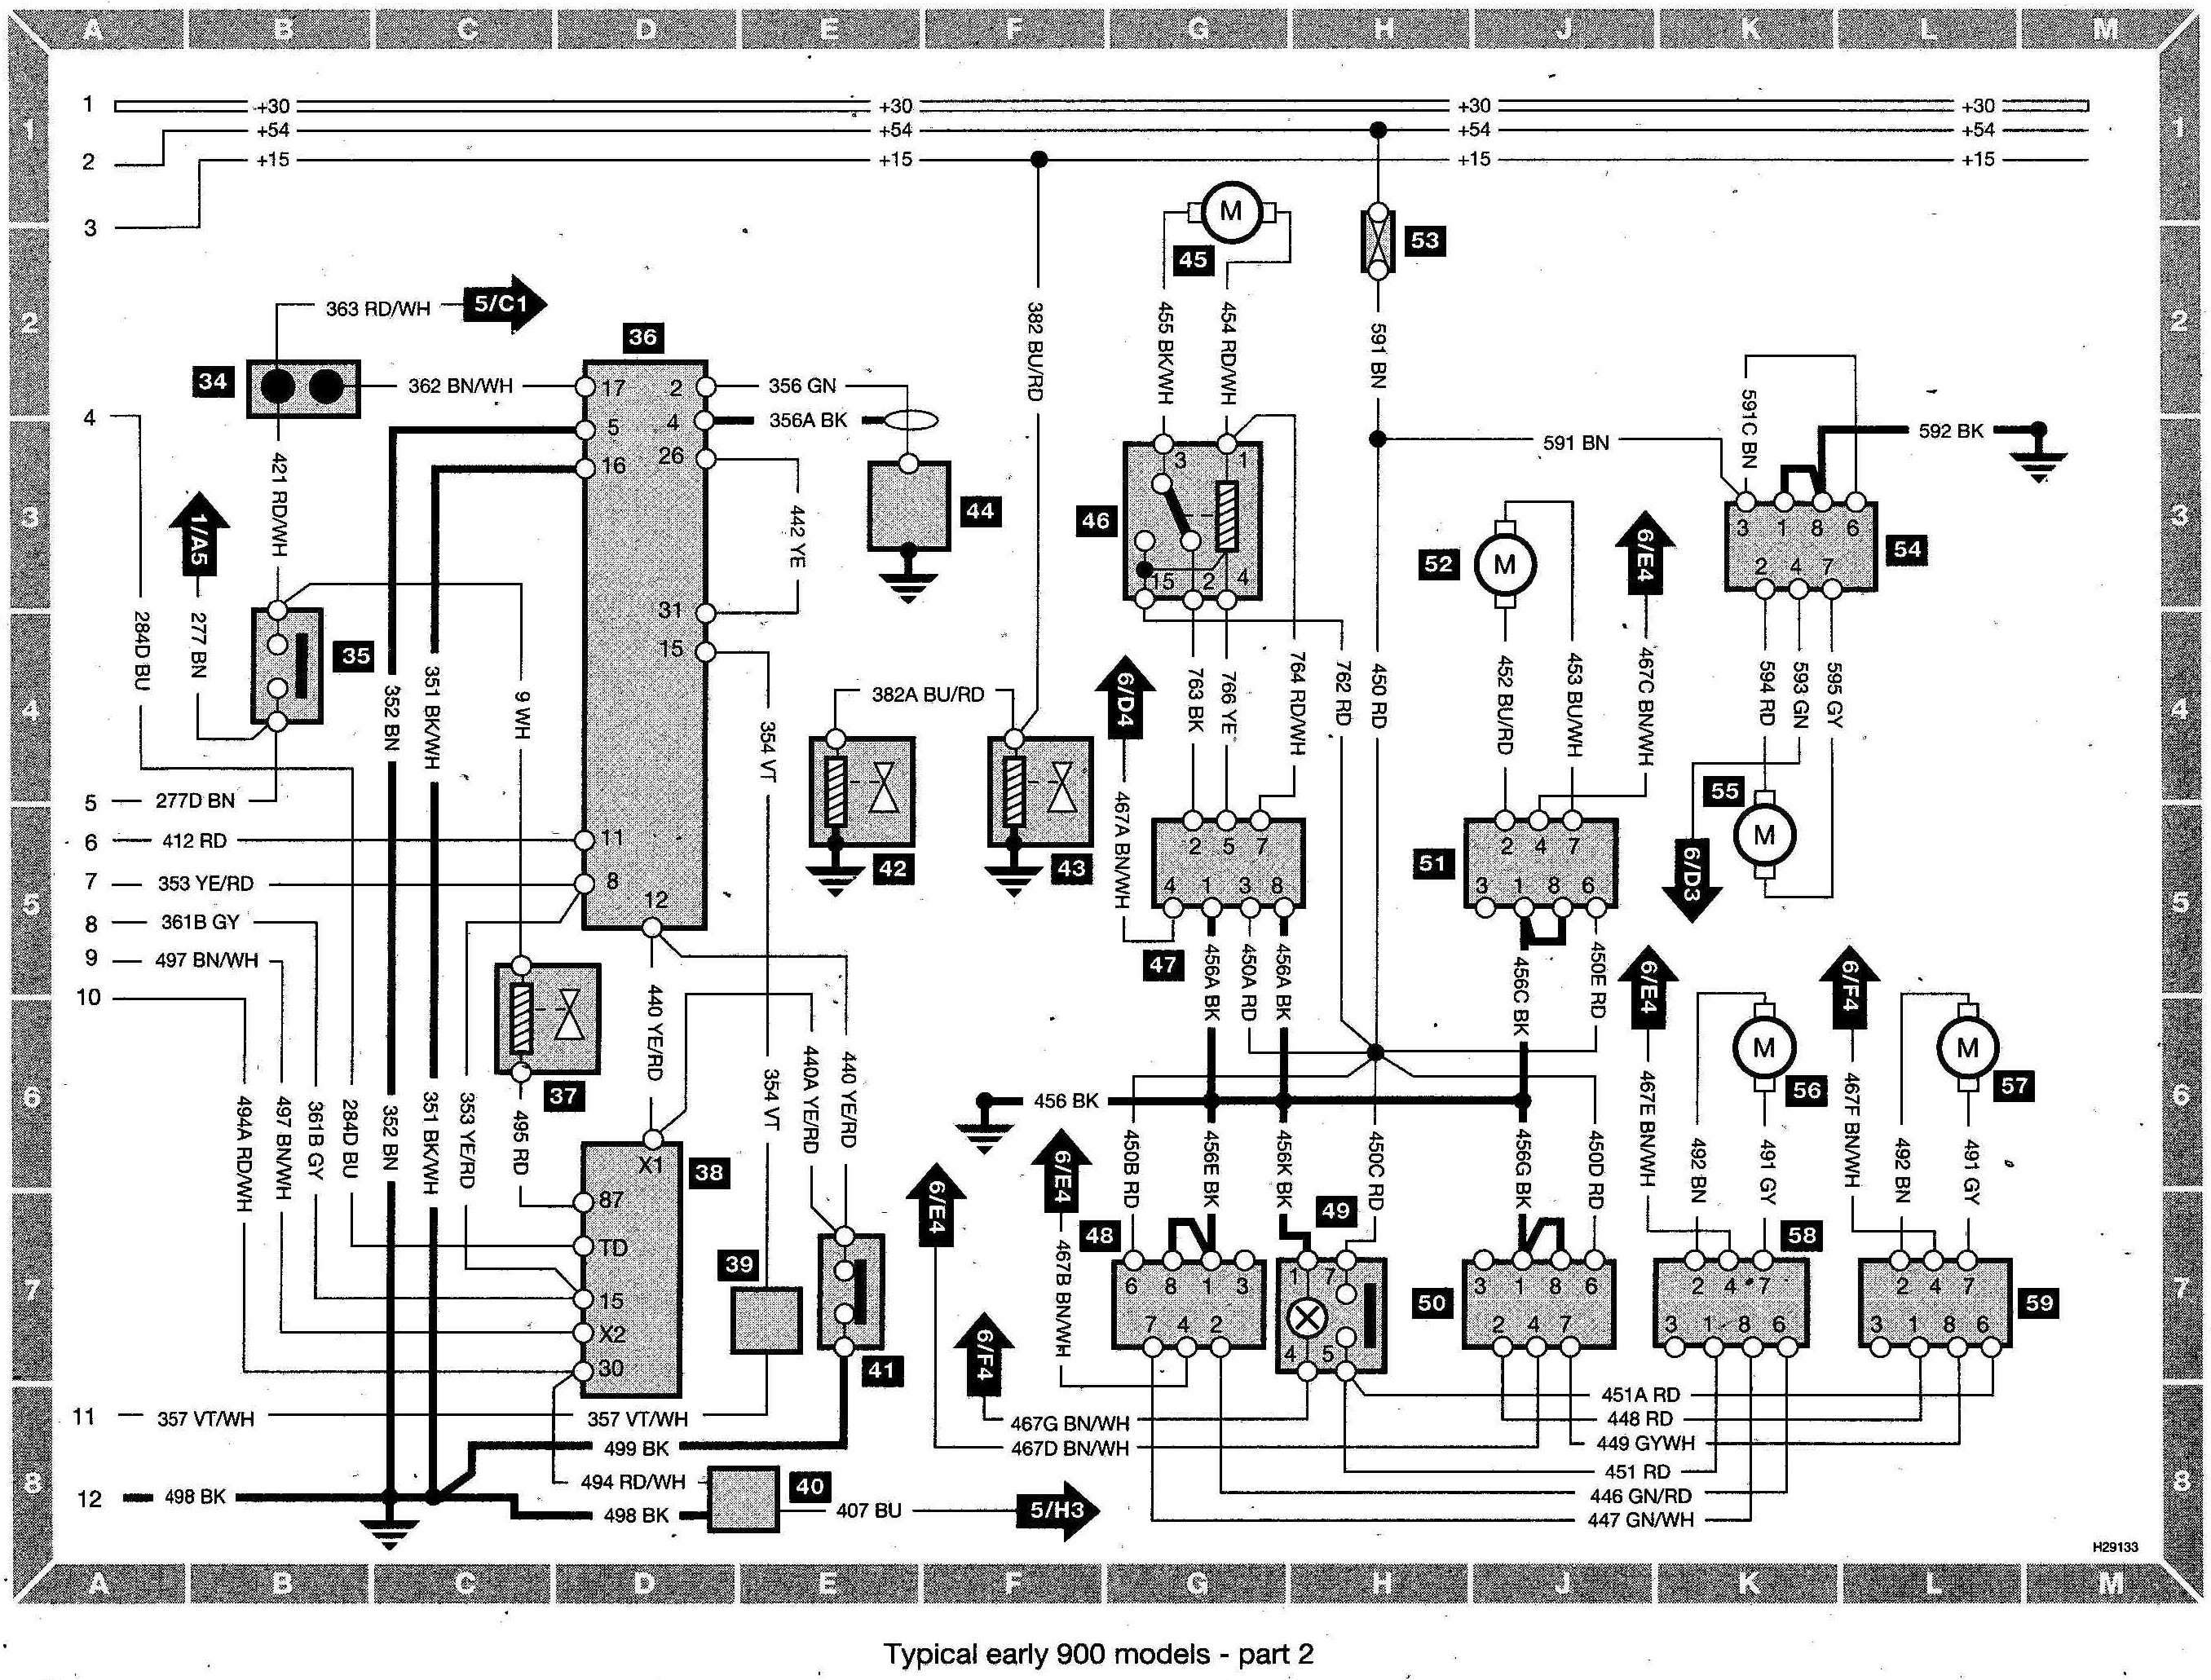 saab 900 fuse diagram wiring diagram yersaab 900 fuse diagram wiring diagrams mon 1997 saab 900 fuse diagram saab 900 fuse diagram